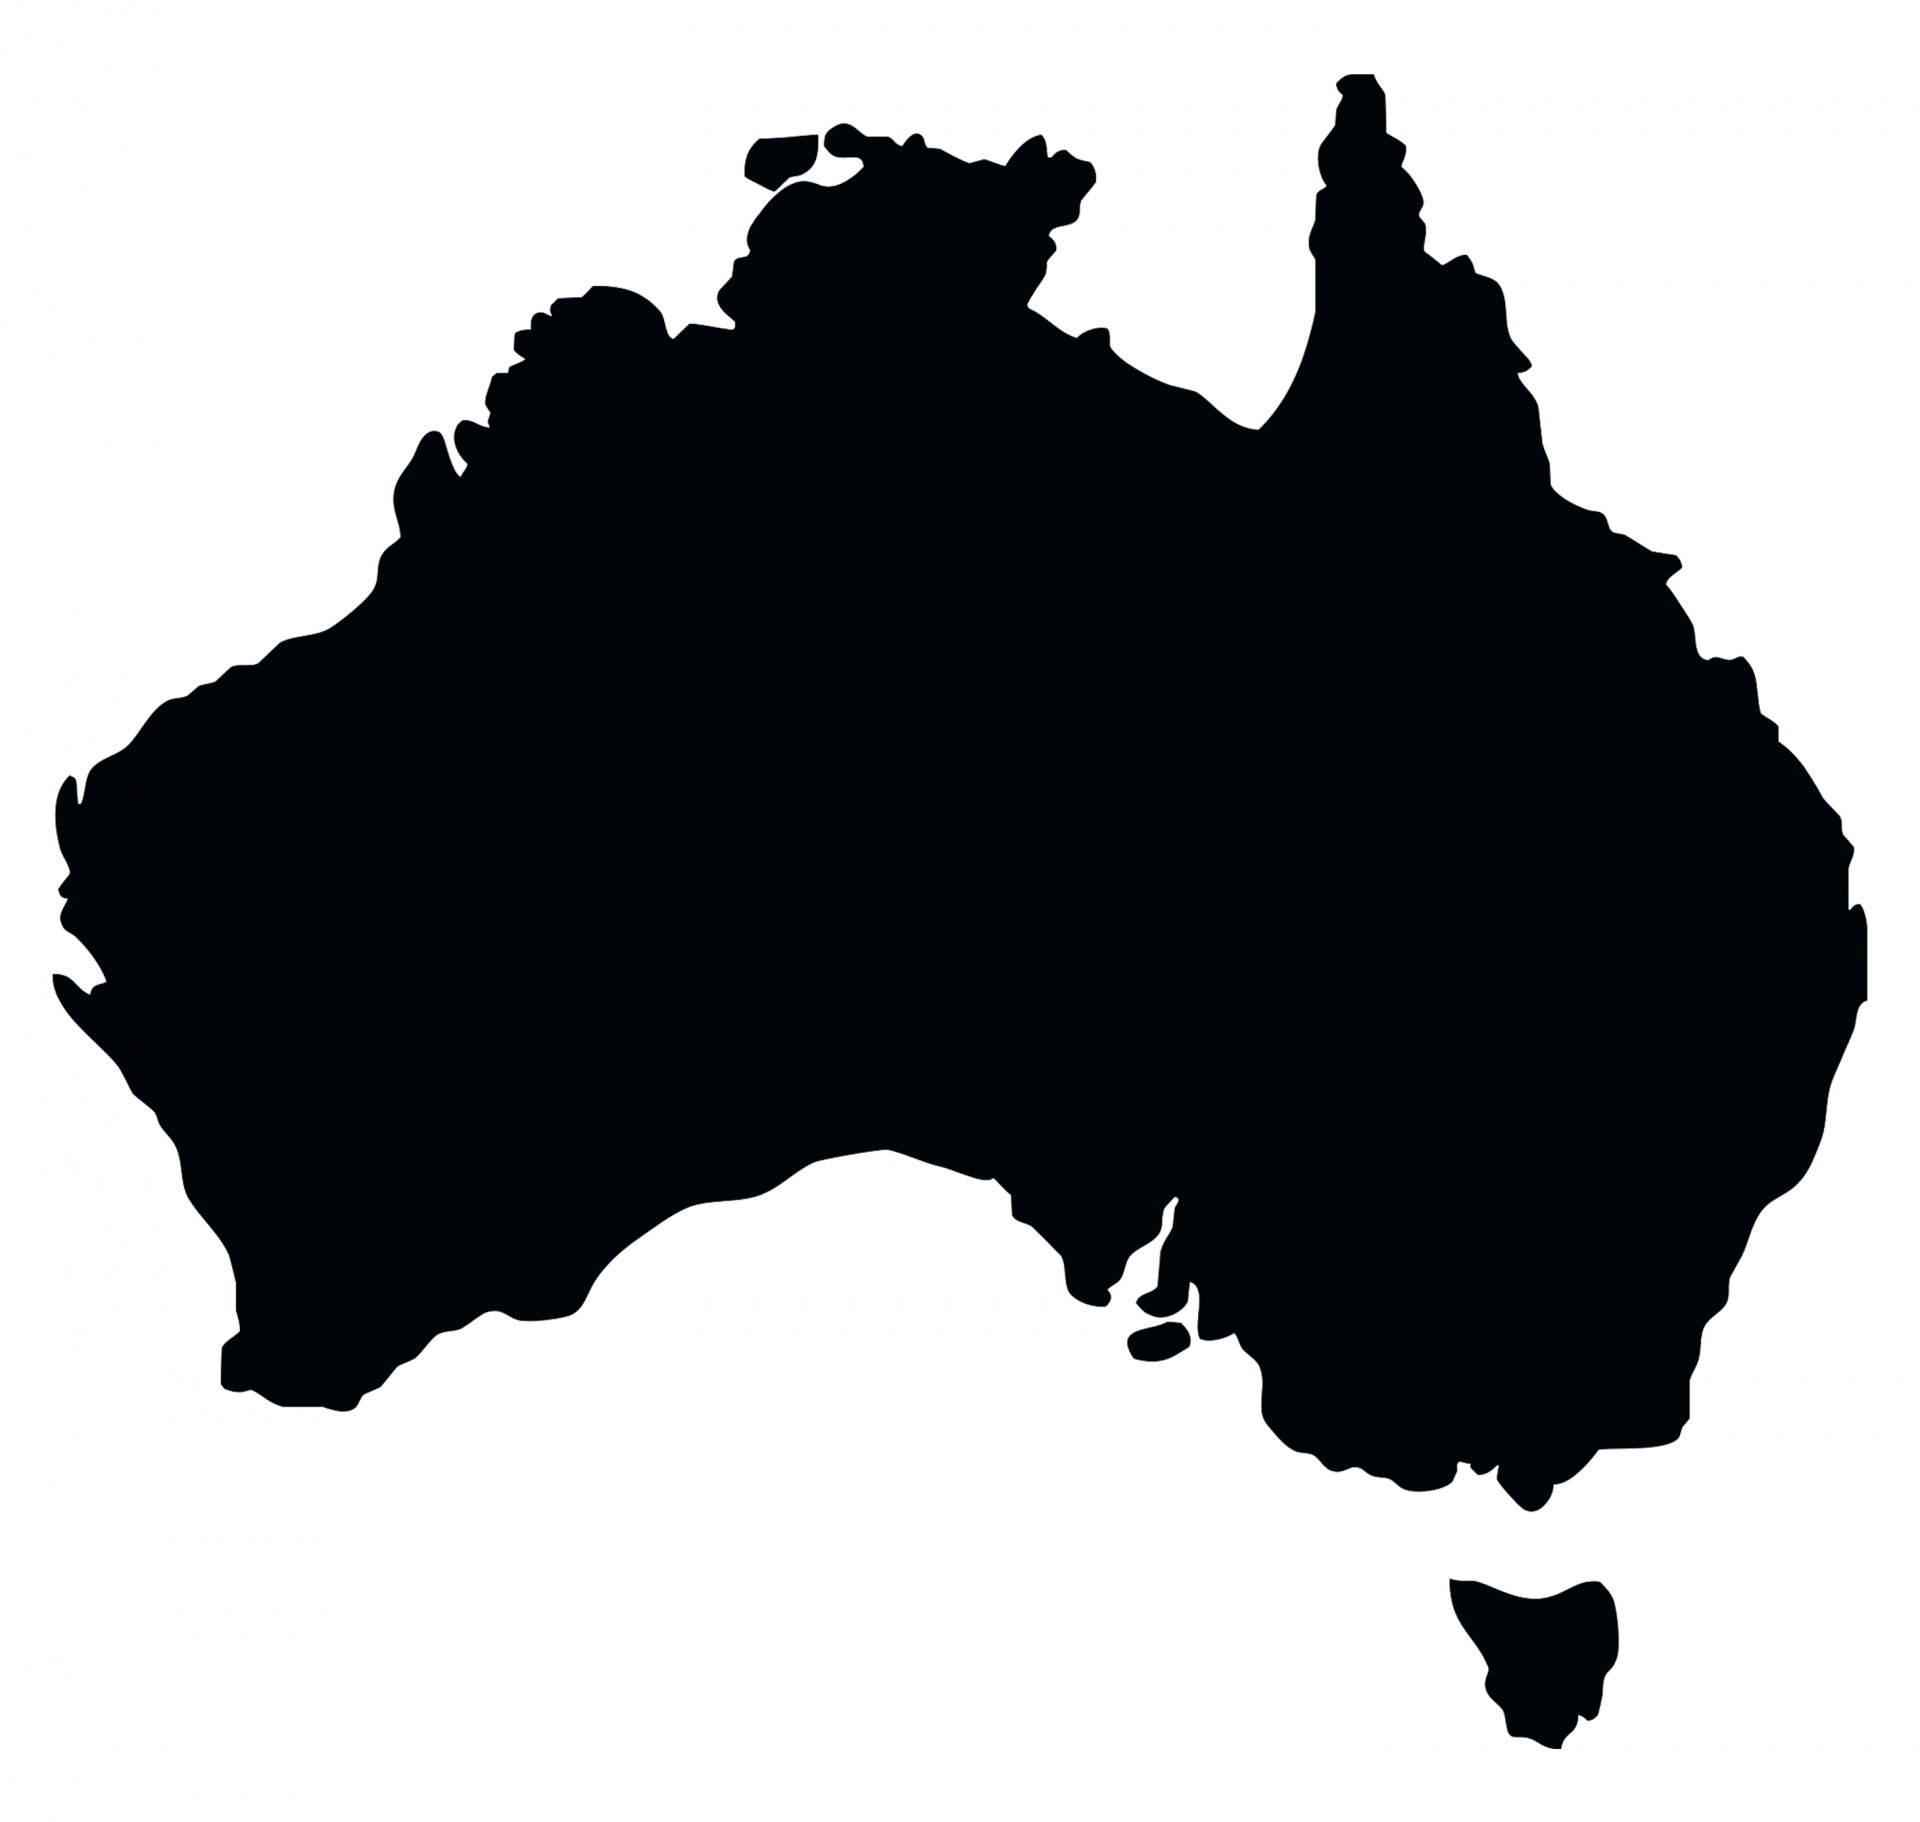 Map Outline Australia.Australia Country Map Outline Shape Free Photo From Needpix Com